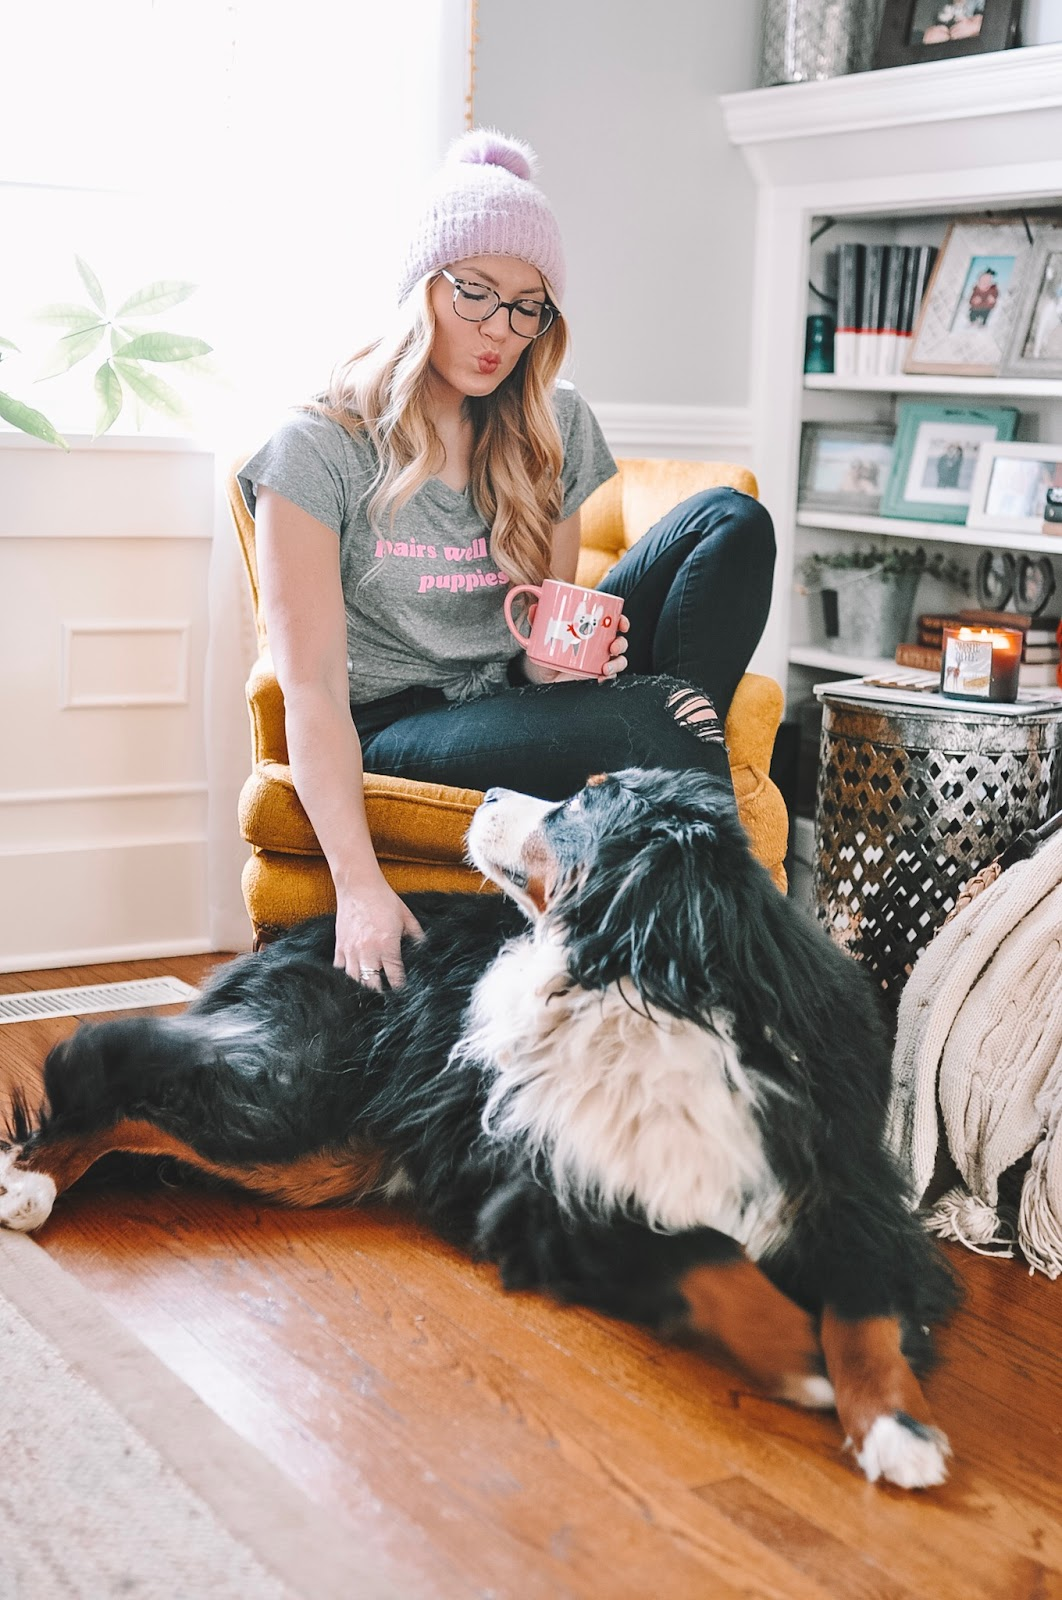 OKC blogger Amanda Martin relaxes with her dog and a good candle.